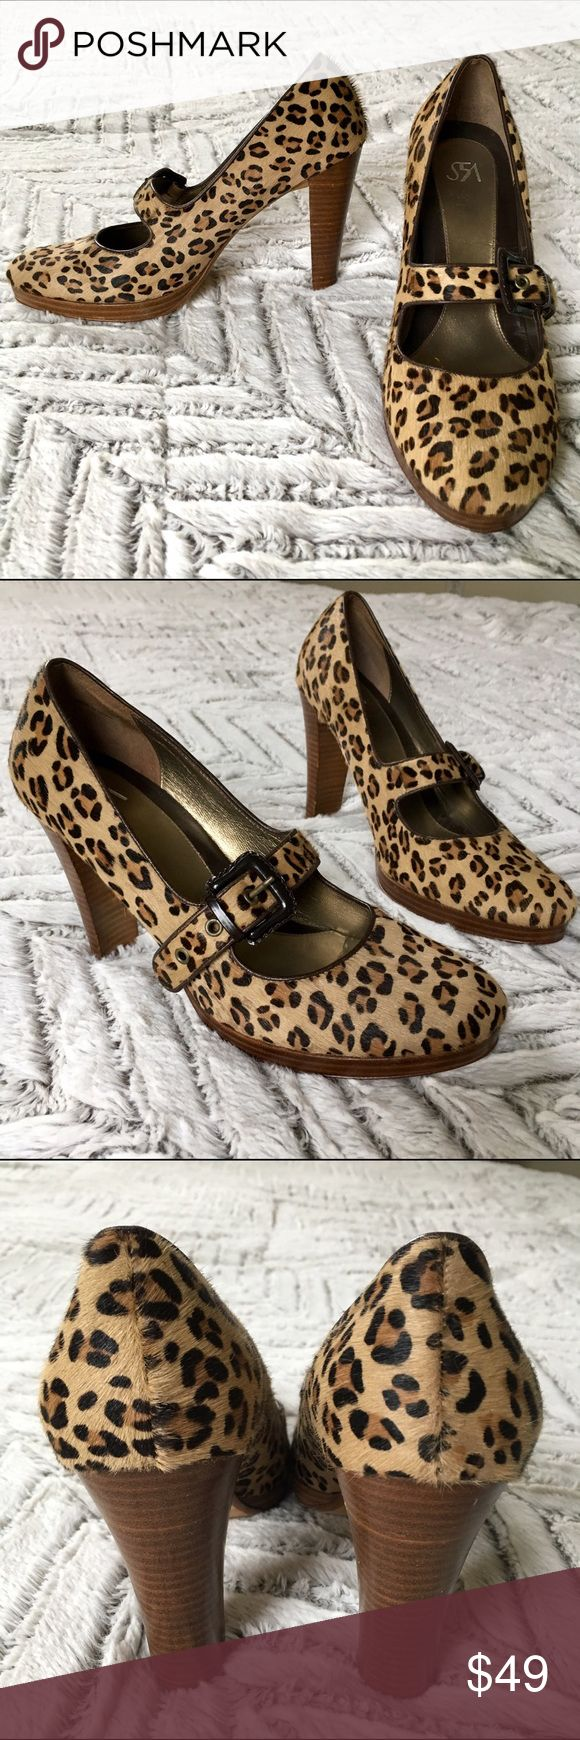 """Saks 5th Ave Pony Hair Mary Jane Chunky Heels, 10 Gorgeous Saks 5th Avenue Leopard Print Pony (calf) hair Mary Jane Chunky Platform Heels, size 10M. In good pre-owned condition with some visible signs of wear: scratches on wood platforms and heels, wear on soles, some patches in Pony hair. So much life left-- a really beautiful pair of shoes. Please see photos for best description of condition. 1/2"""" Platform, 4.5"""" heel. Saks Fifth Avenue Shoes Heels"""